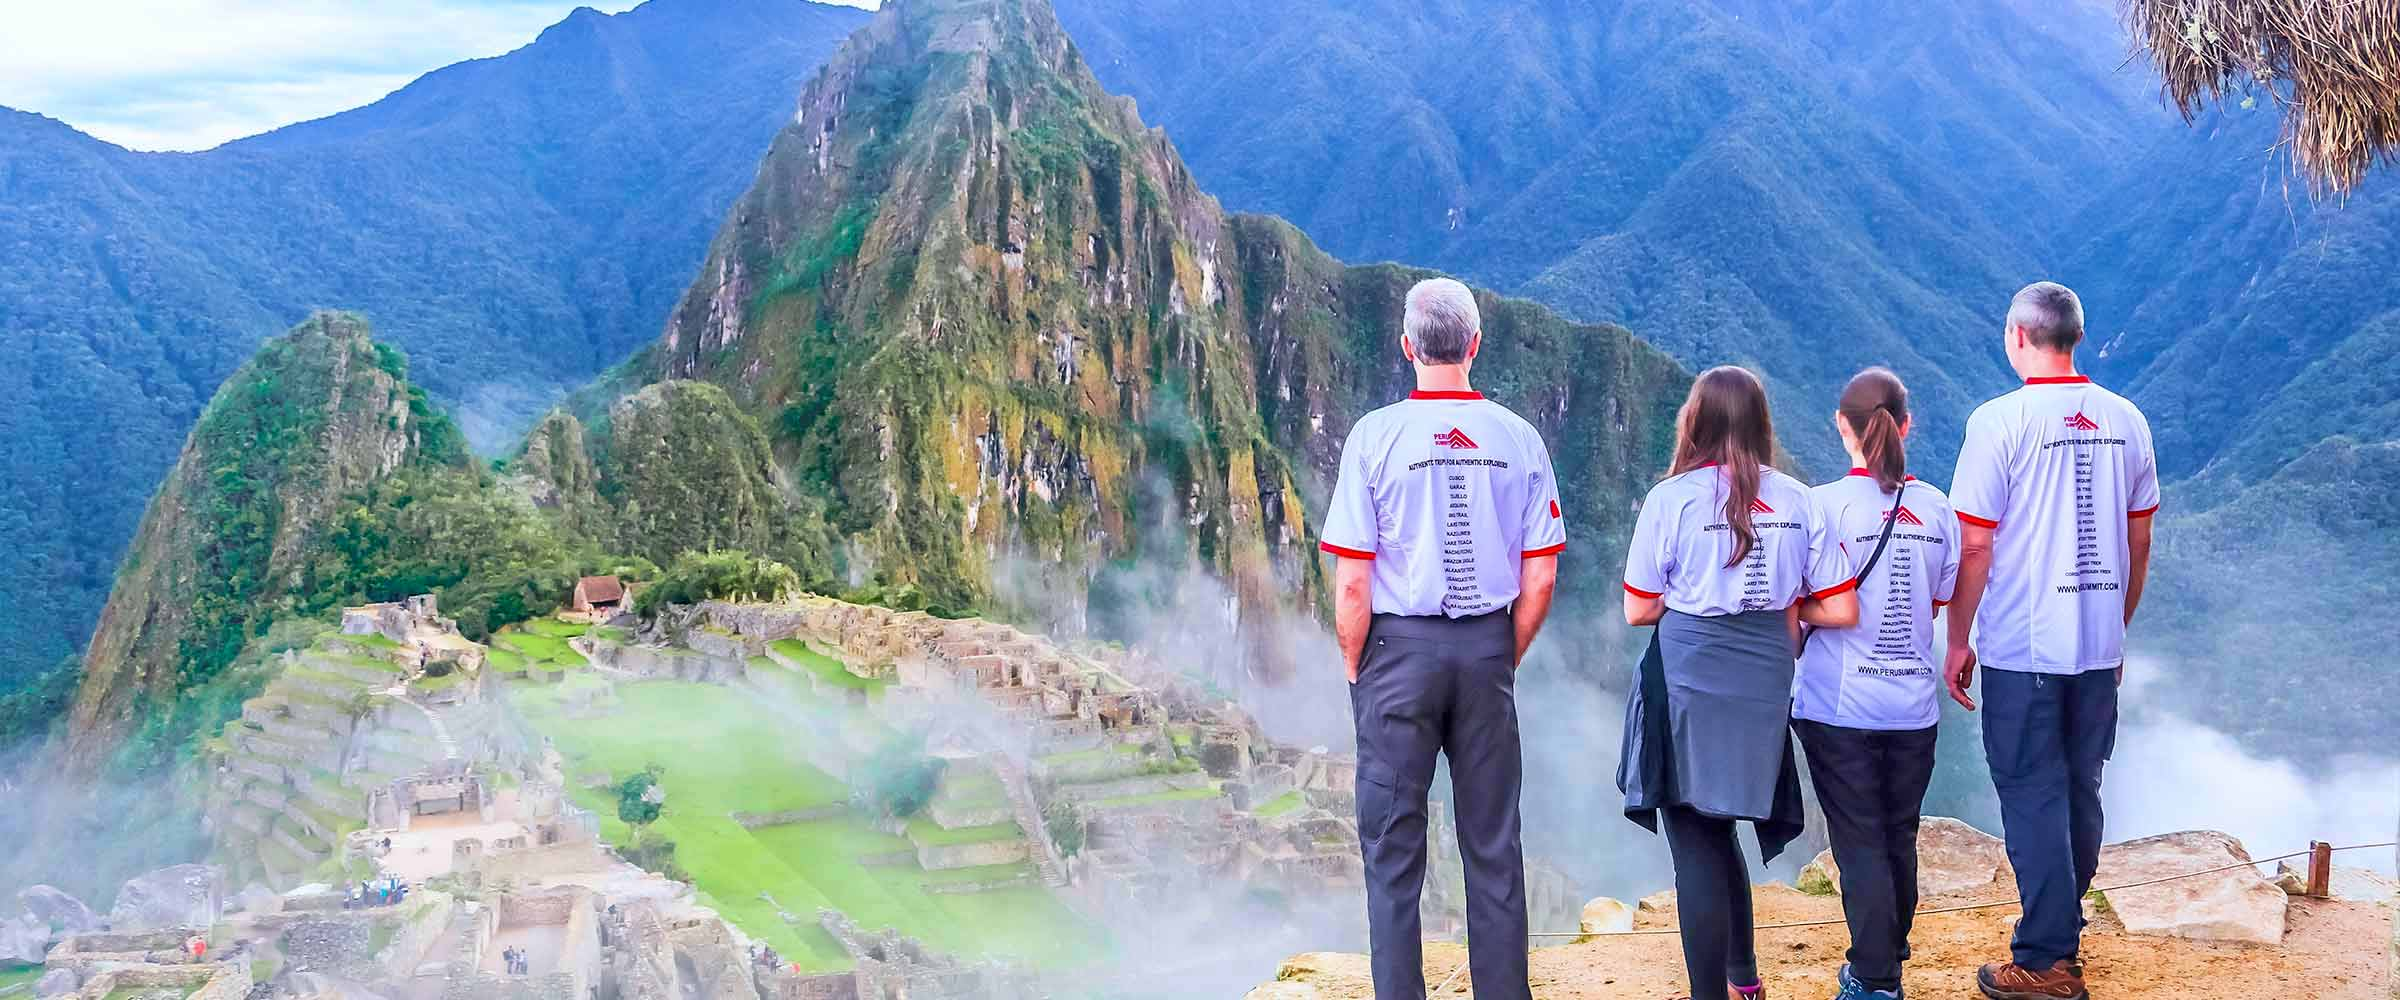 Machu Picchu Tour Packages